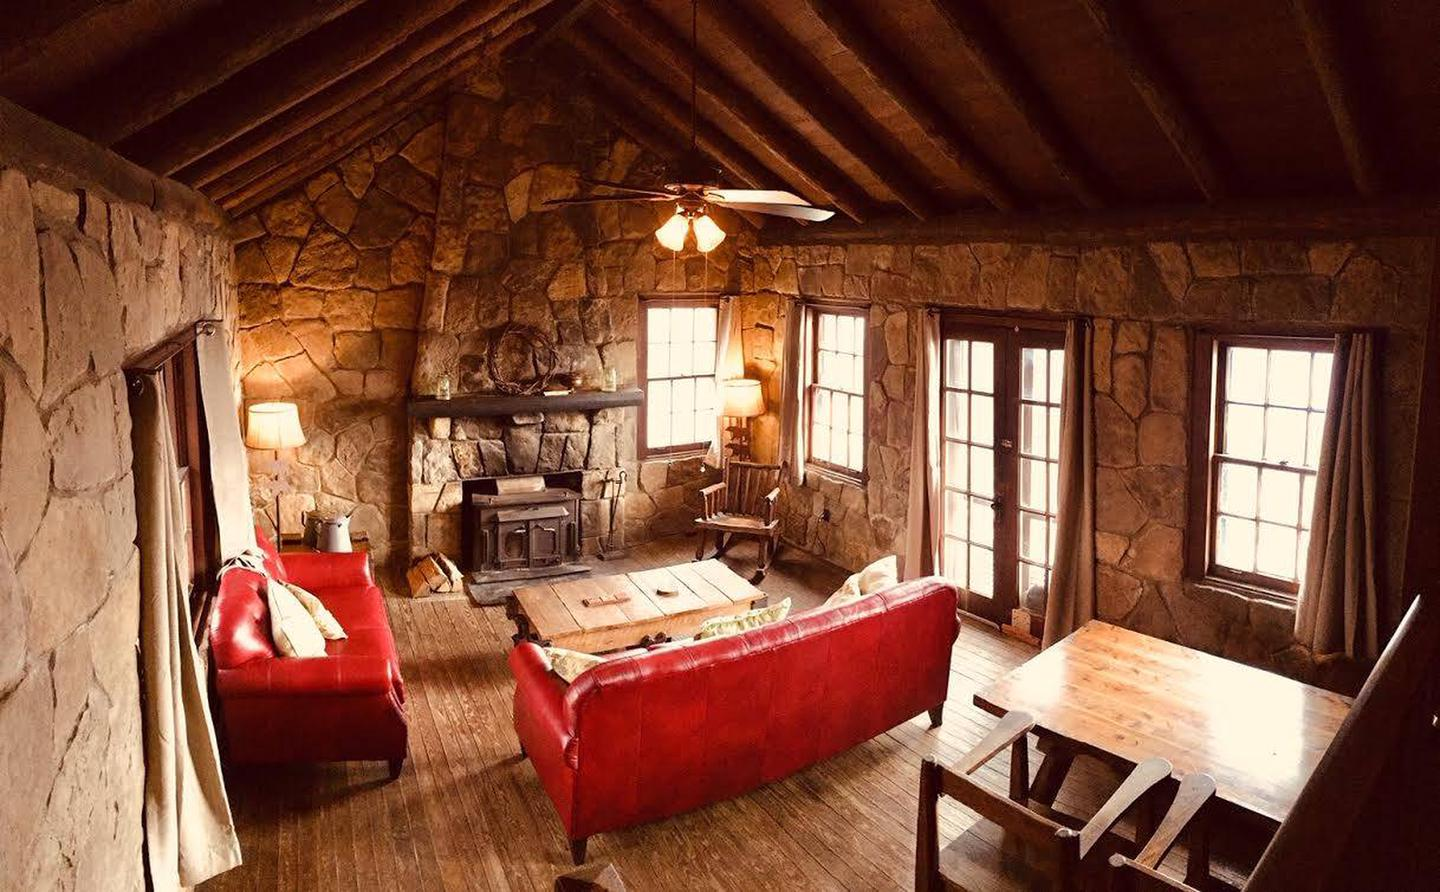 White Rock Mountain, Cabin B with new sofas.Cabin B living room with spectacular rock walls and fireplace.